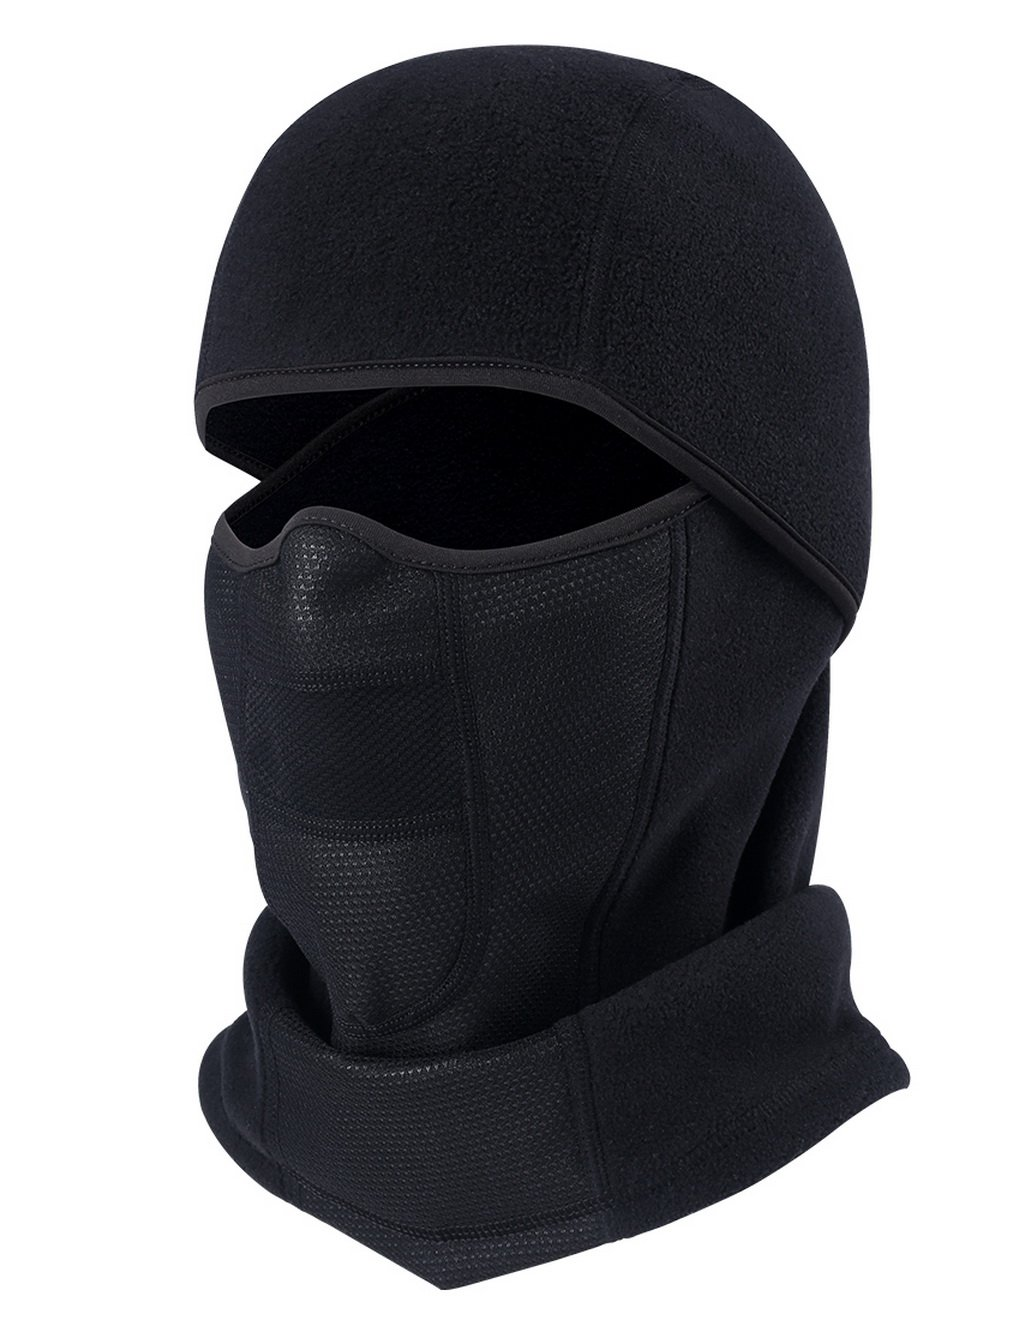 ChinFun Balaclave Windproof Ski Mask Cold Weather Face Mask Winter Tactical Hood Motorcycle Neck Warmer Ultimate Thermal Retention Winter Outdoor Premium Soft Moisture Wicking Black-Polar Fleece